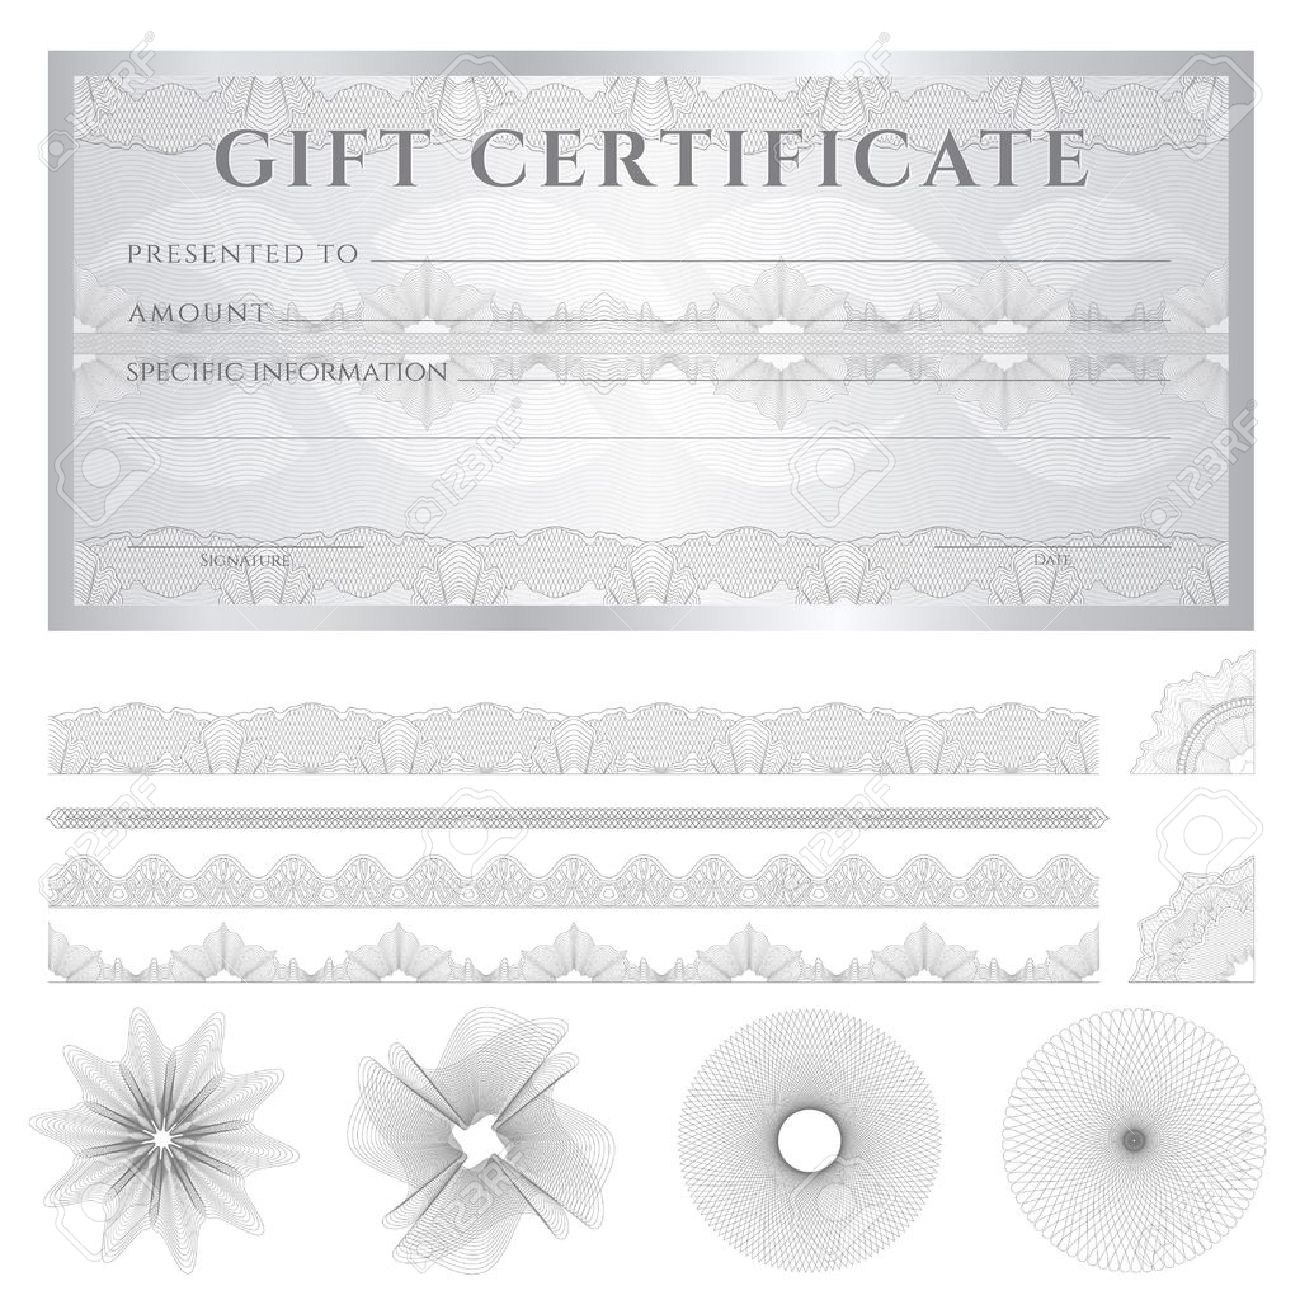 Gift certificate, Voucher, Coupon template (layout) with guilloche pattern (watermarks), border. Stock Vector - 20183568